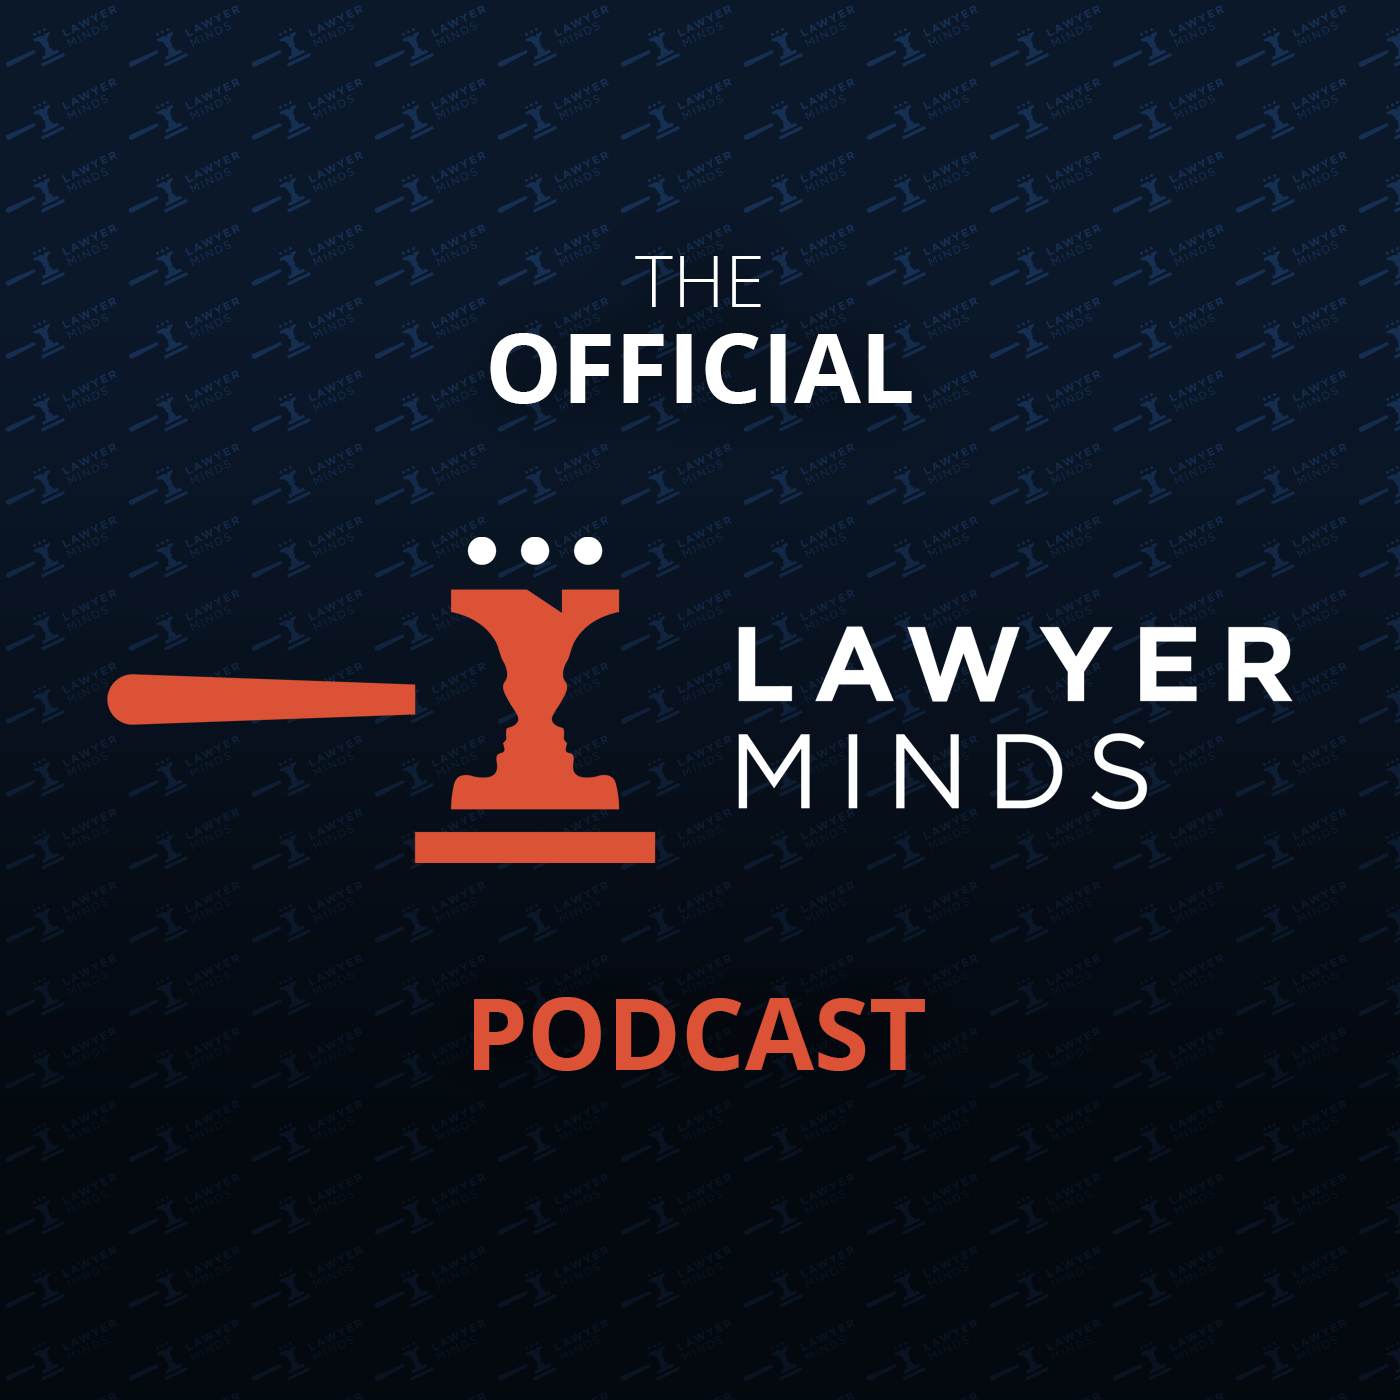 Official Lawyer Minds Podcast show art